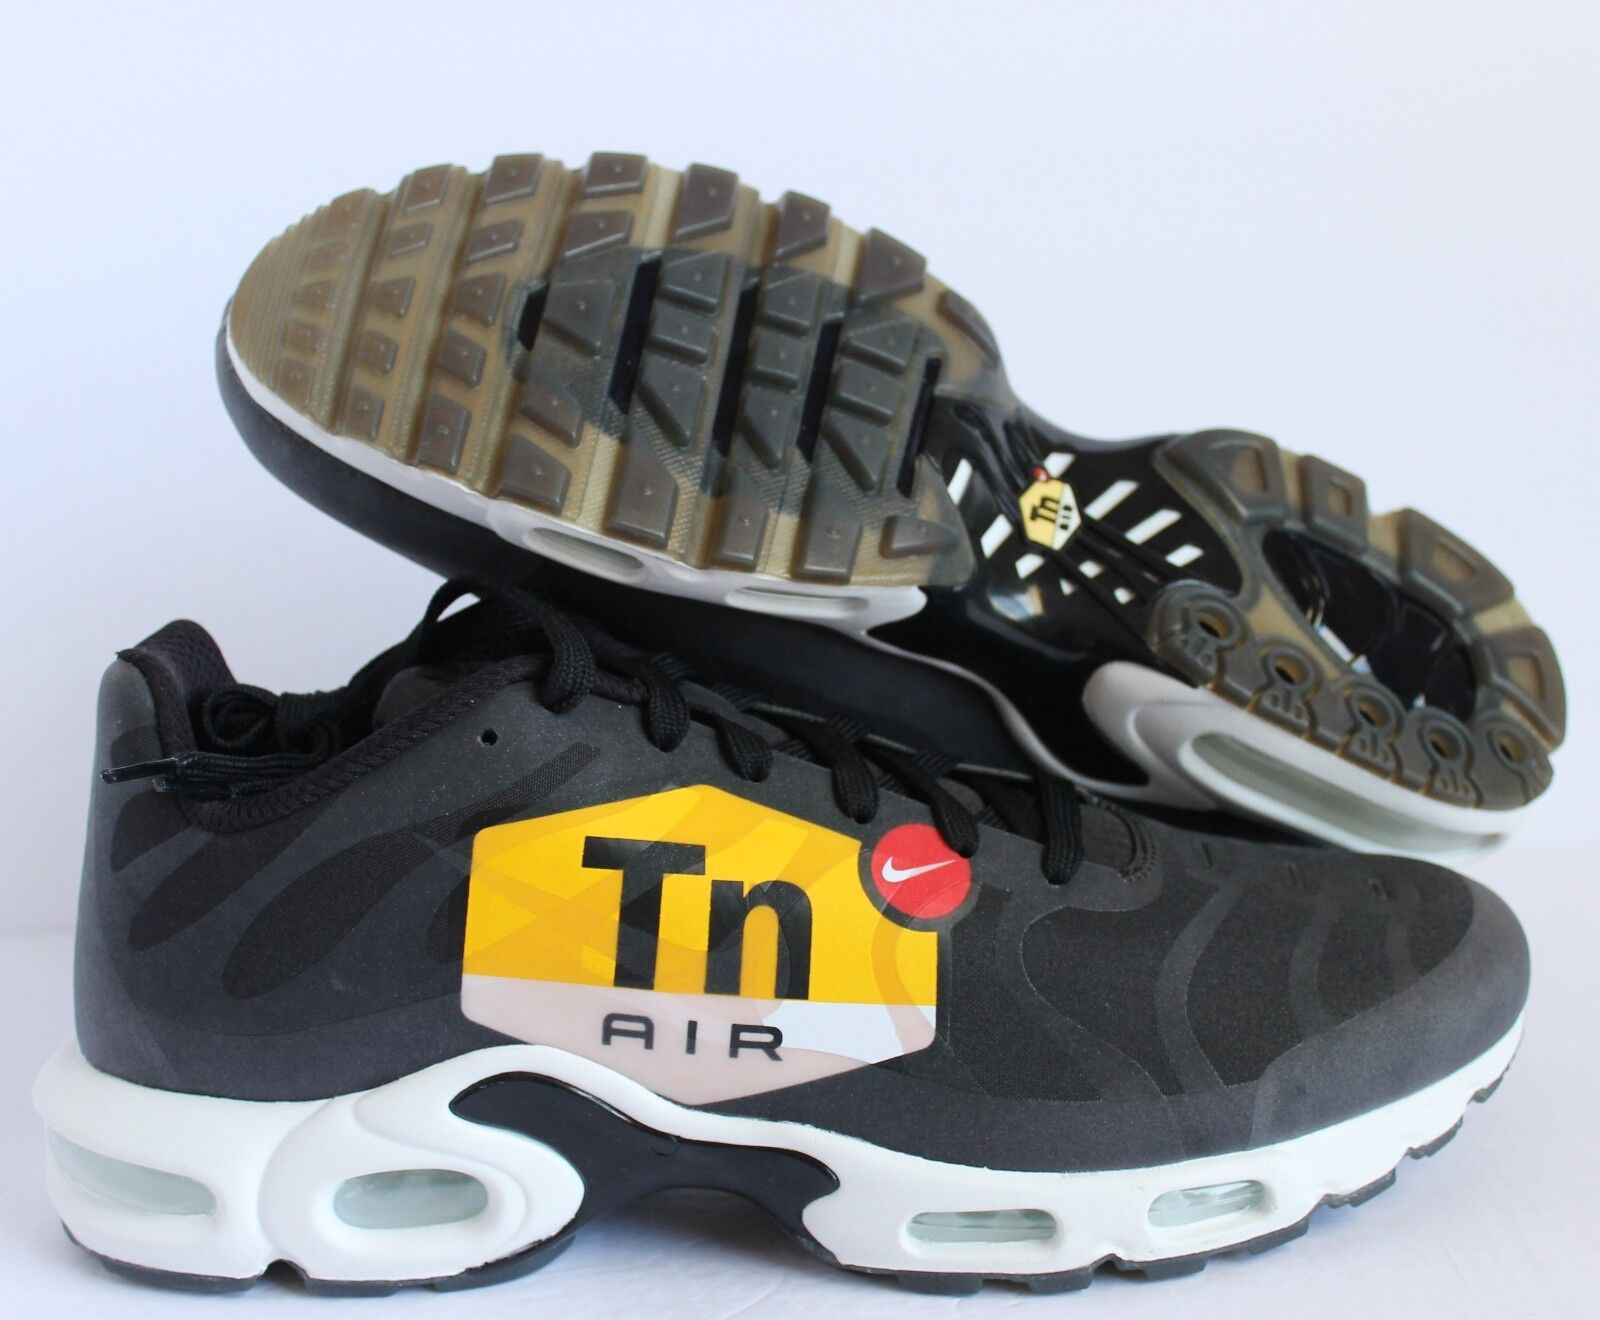 NIKE AIR MAX PLUS NS GPX BLACK-WHITE Price reduction The latest discount shoes for men and women